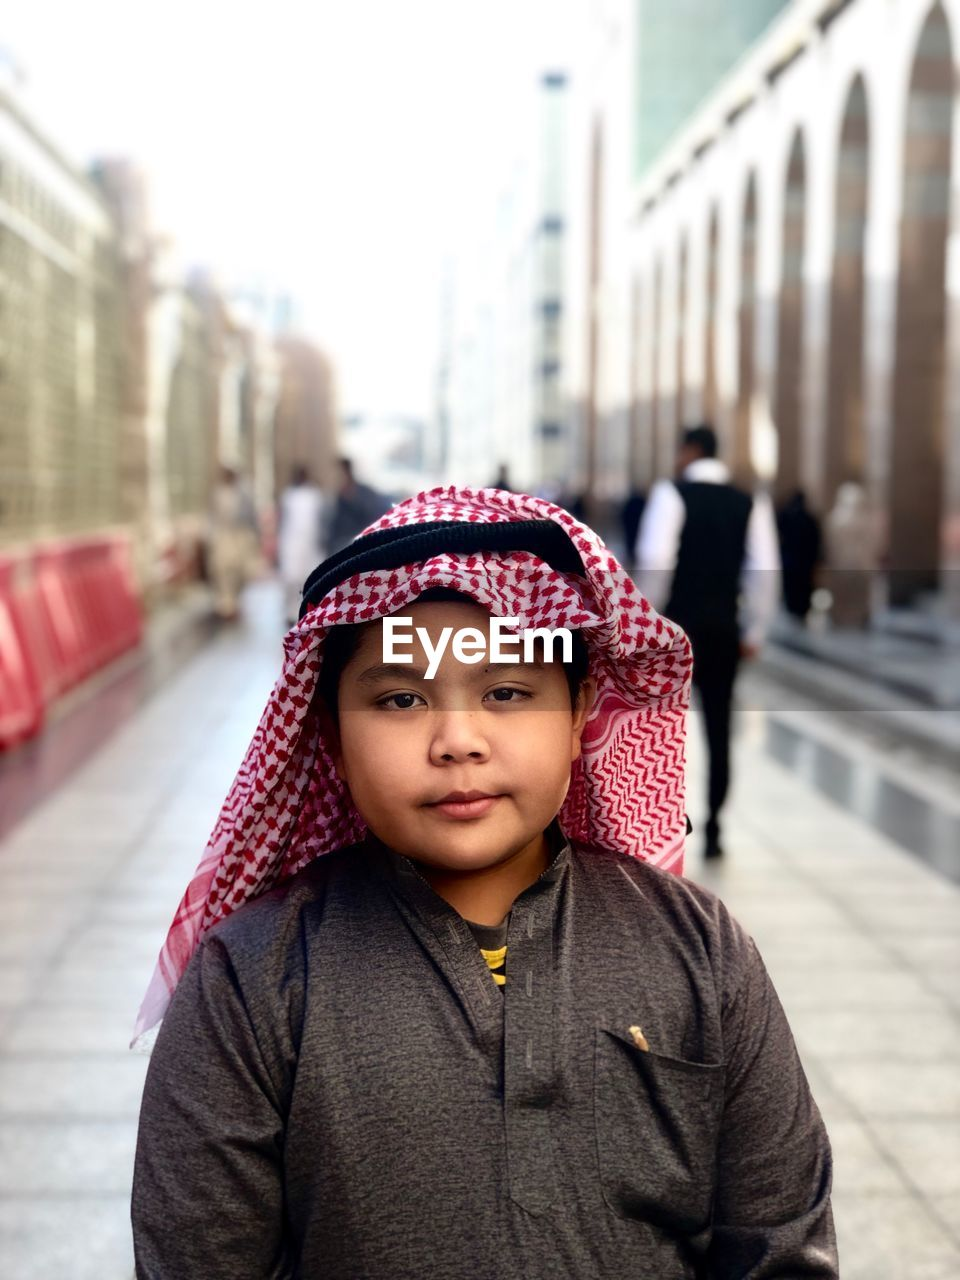 Portrait Of Cute Boy Wearing Traditional Clothing In City